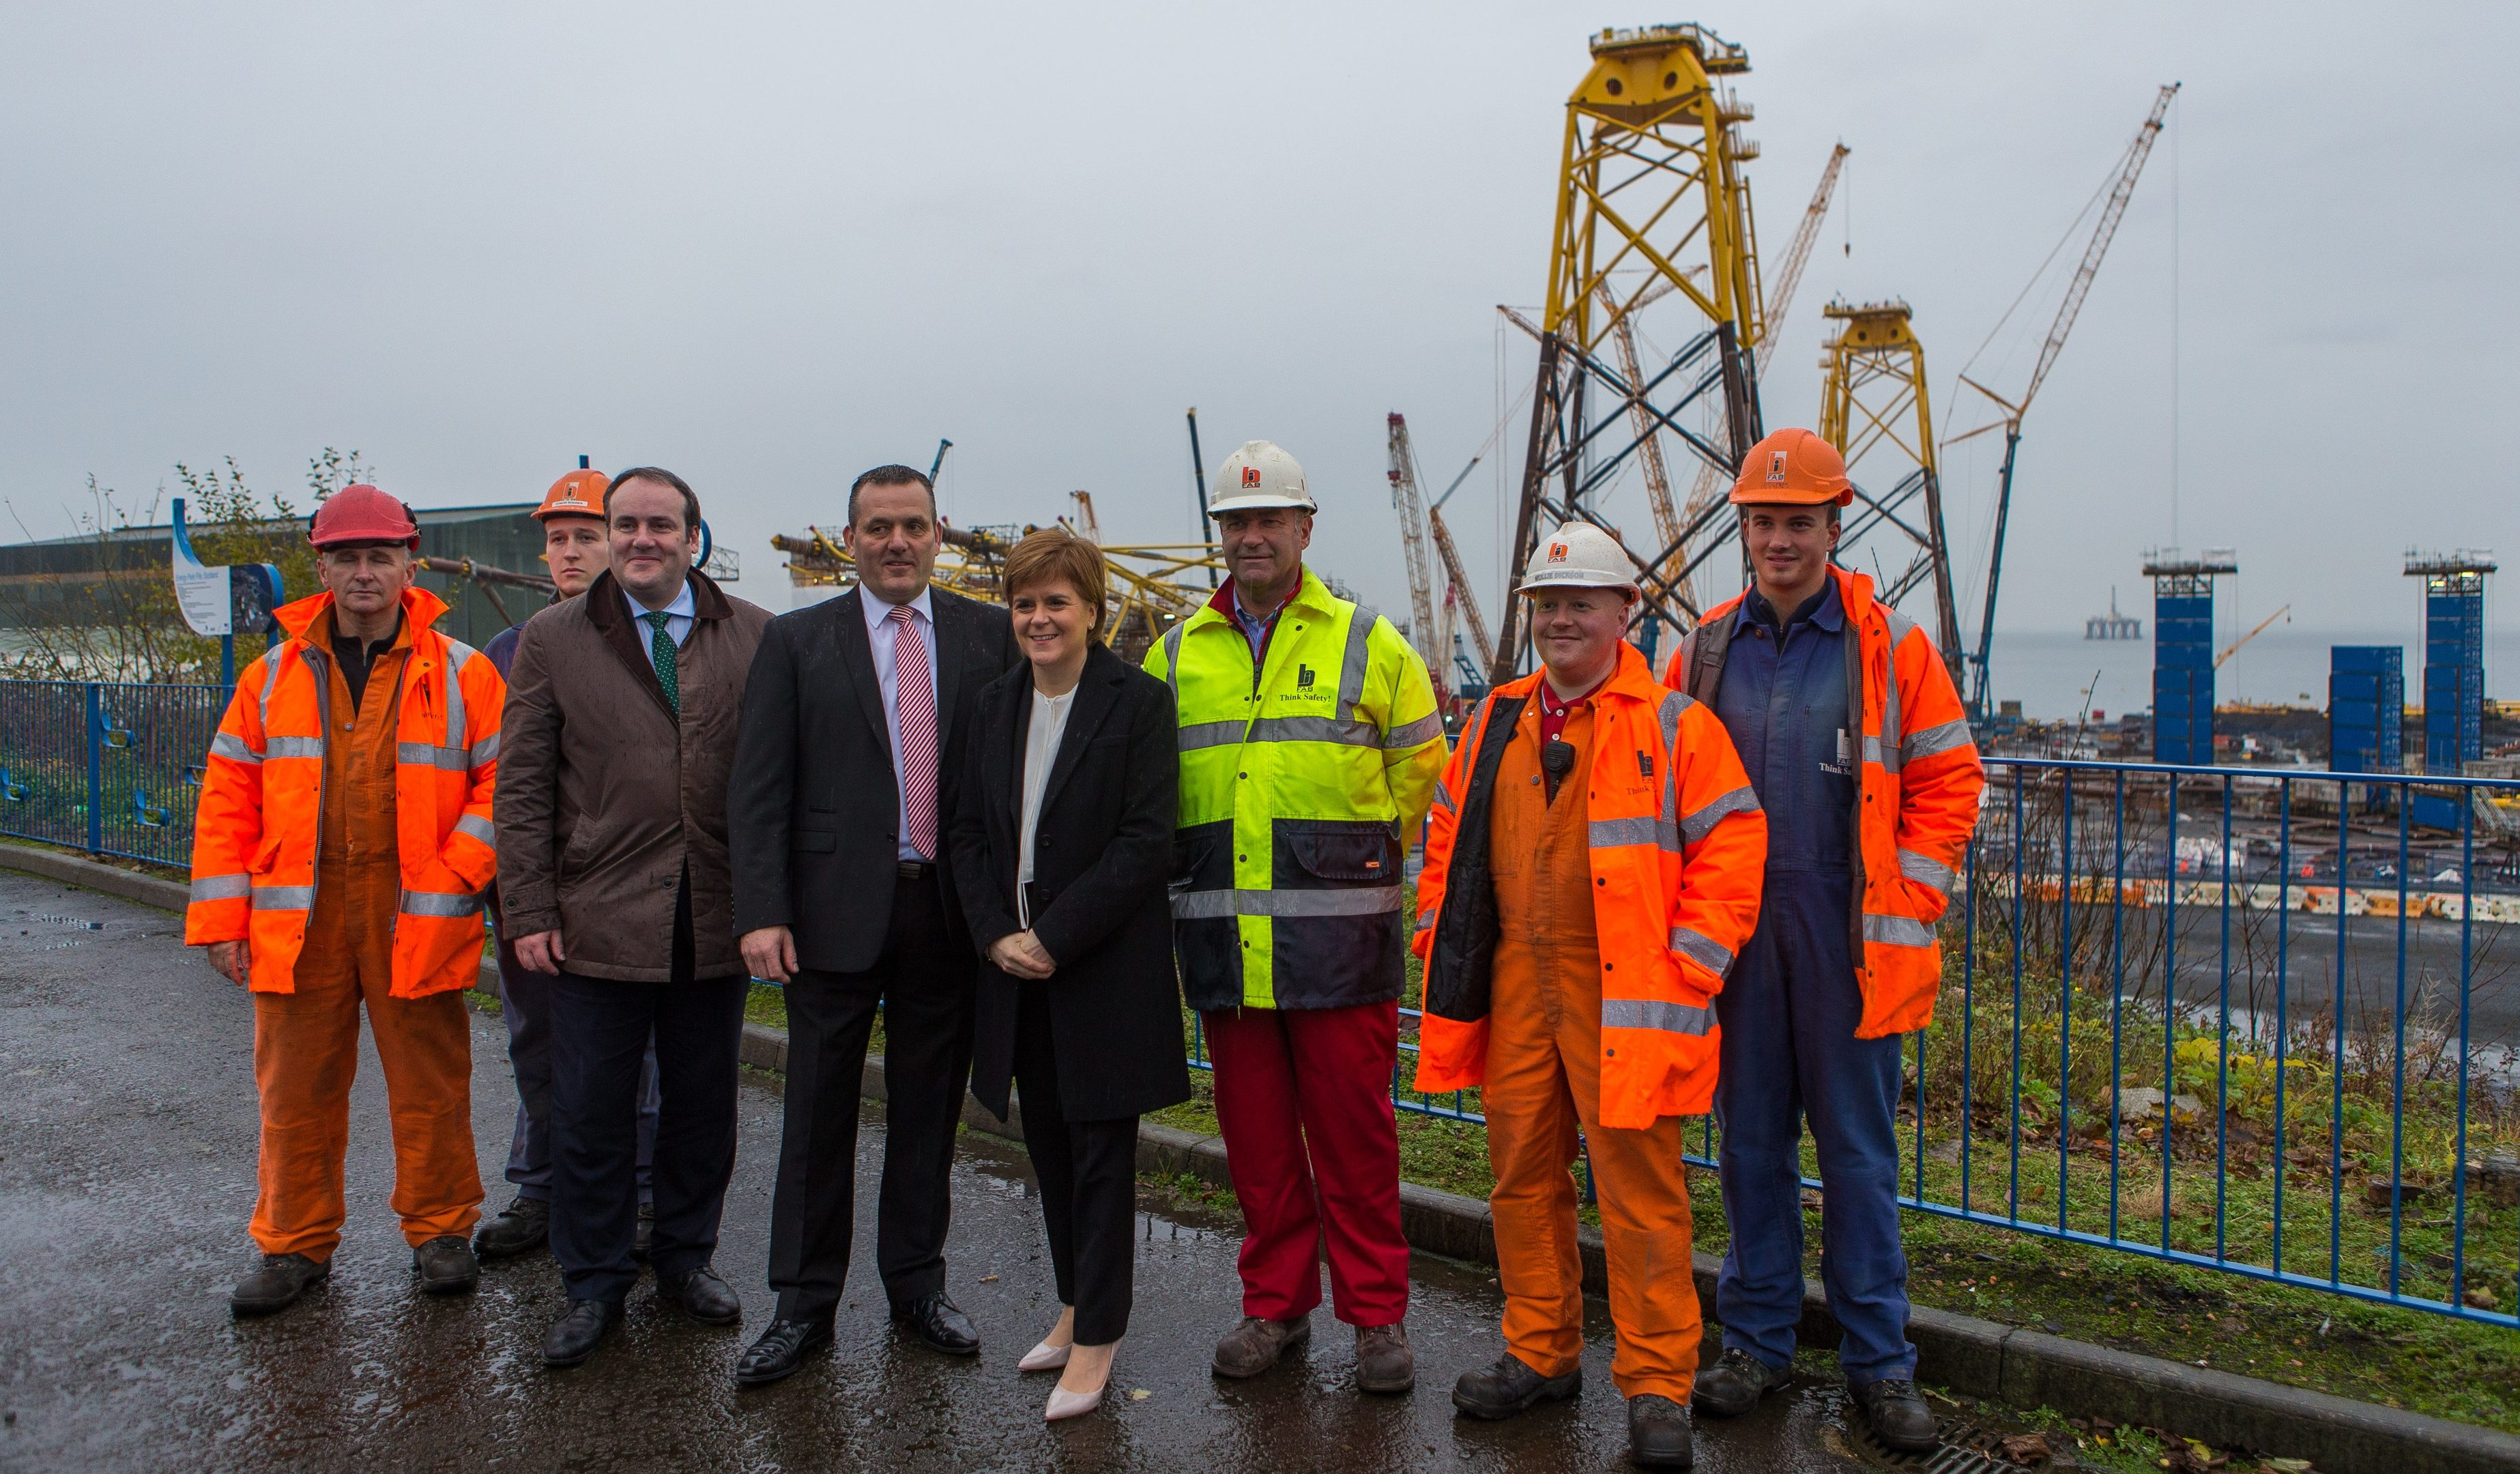 First Minister Nicola Sturgeon visited BiFab when its future was secured last year